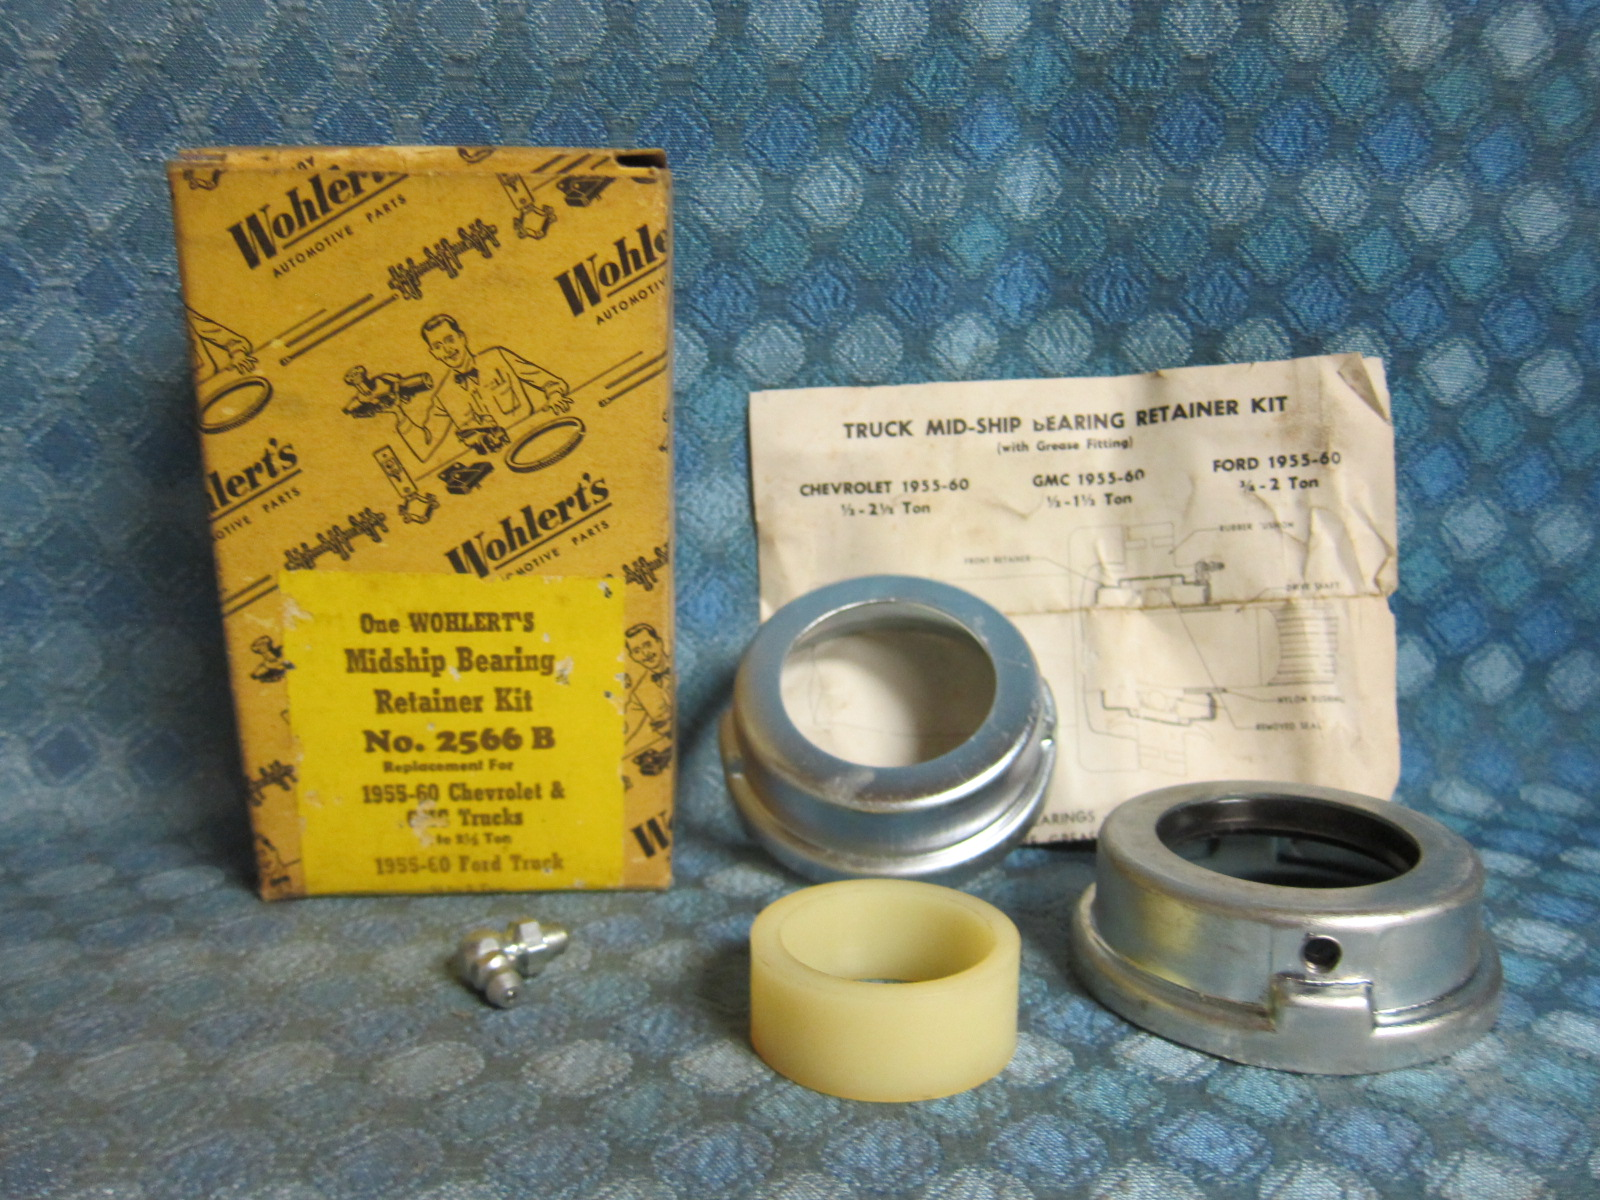 1955-60 Chevy GMC Truck 1/2 - 2 1/2 Ton NORS Midship Bearing Retainer Kit  57 59 - NOS Texas Parts, LLC - Antique Auto Parts